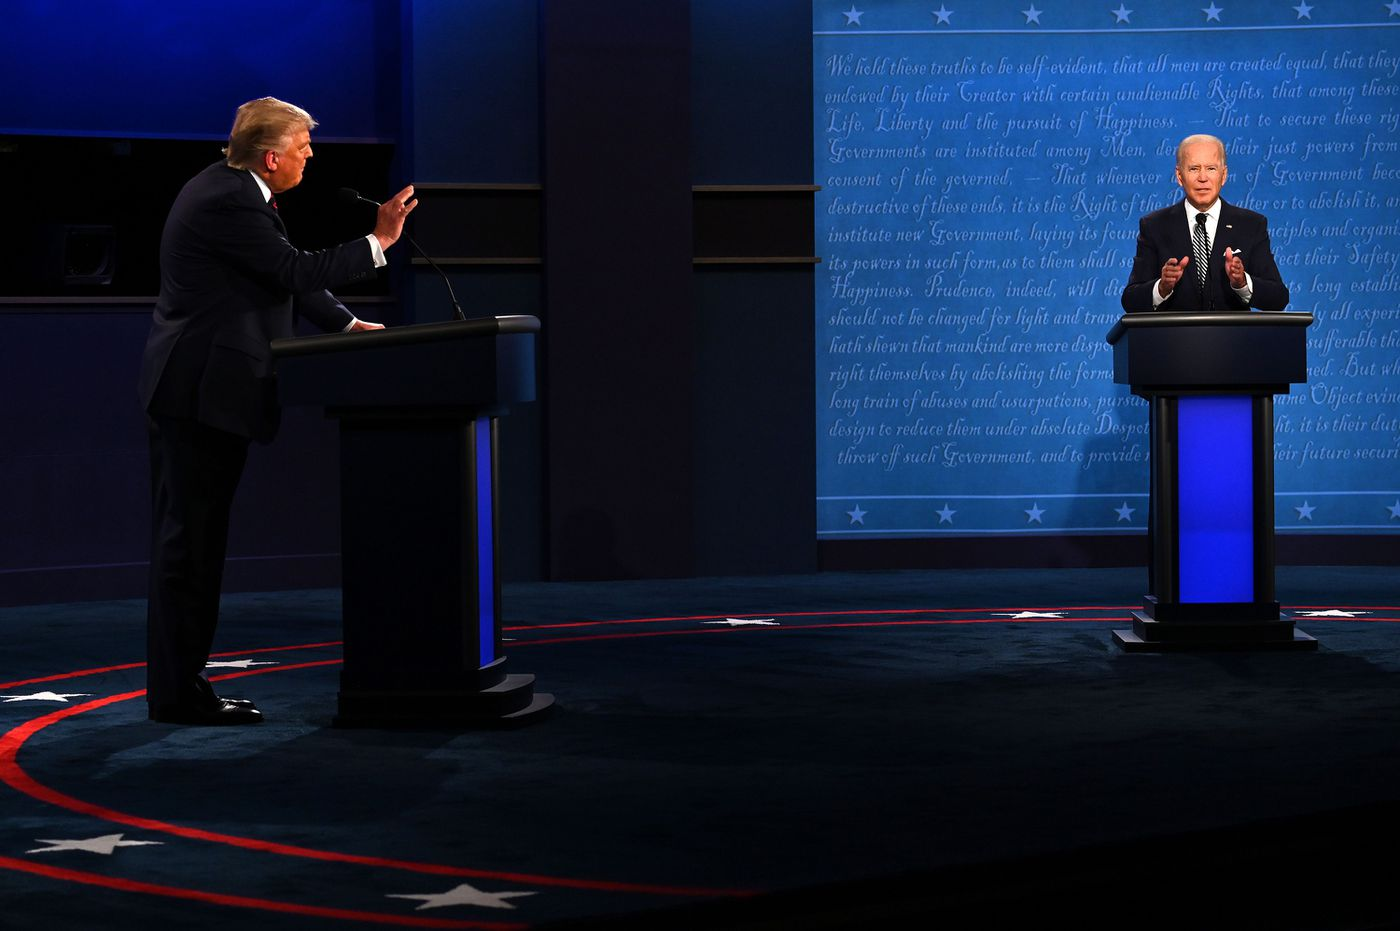 Changes to be made in the structure of US Presidential debates